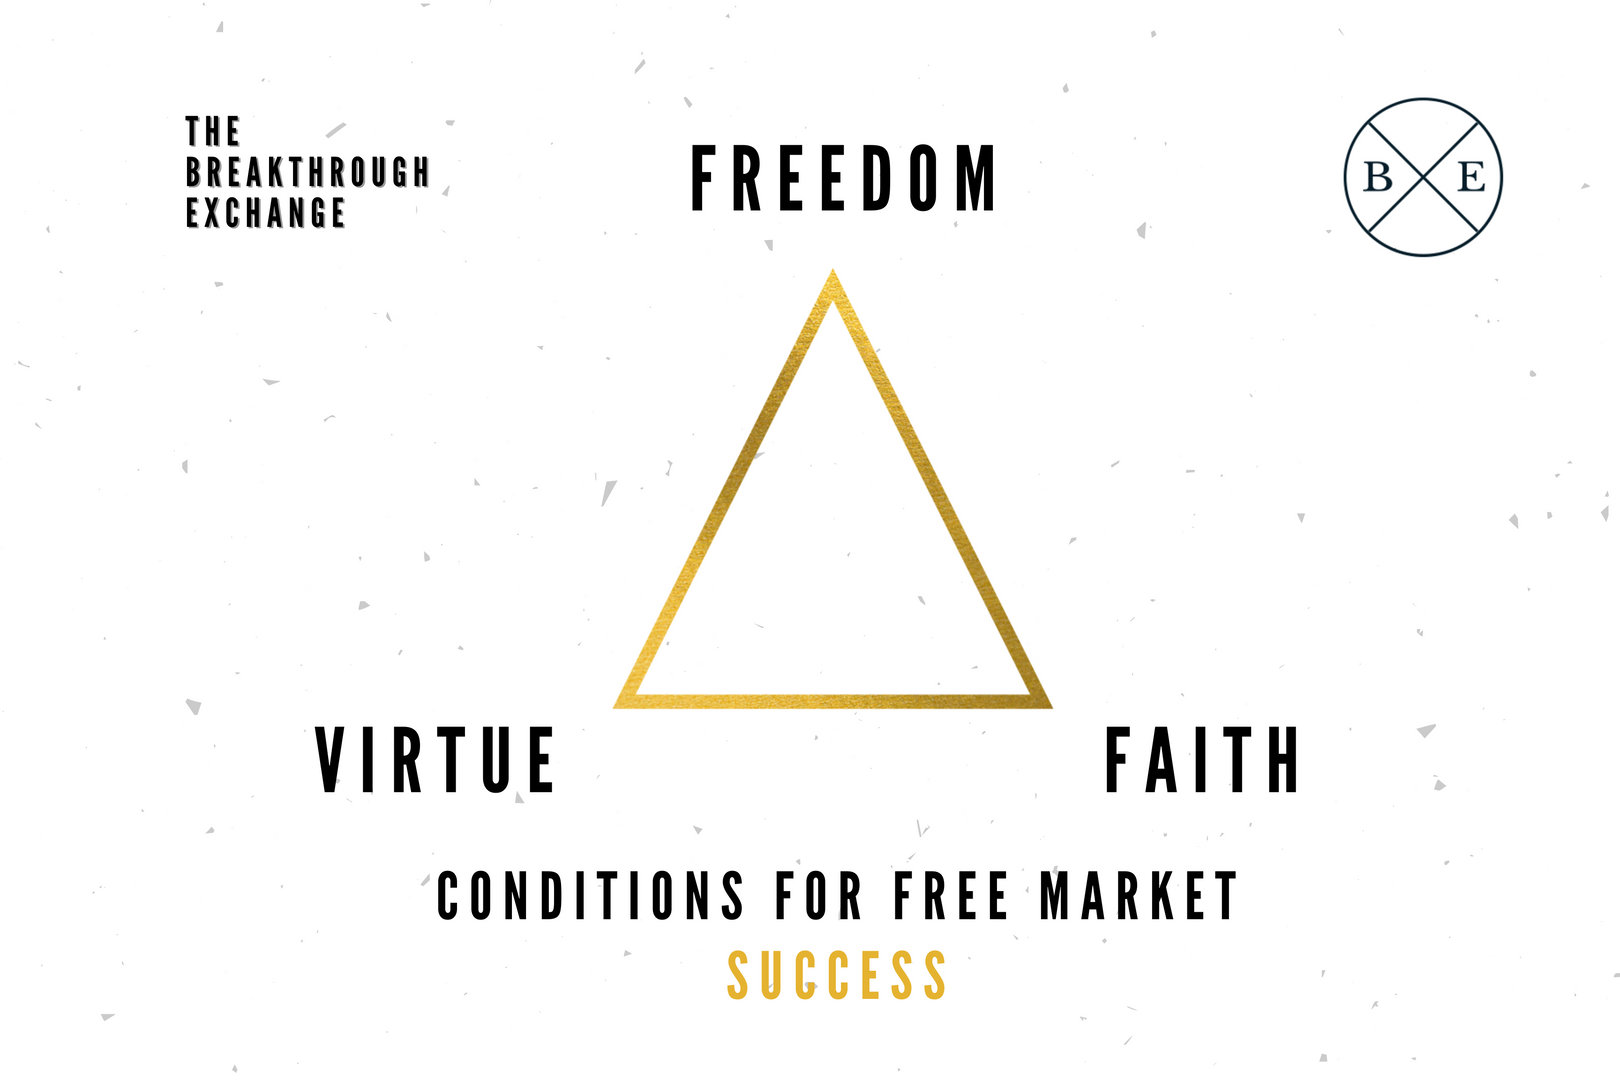 Conditions for Free Market Success